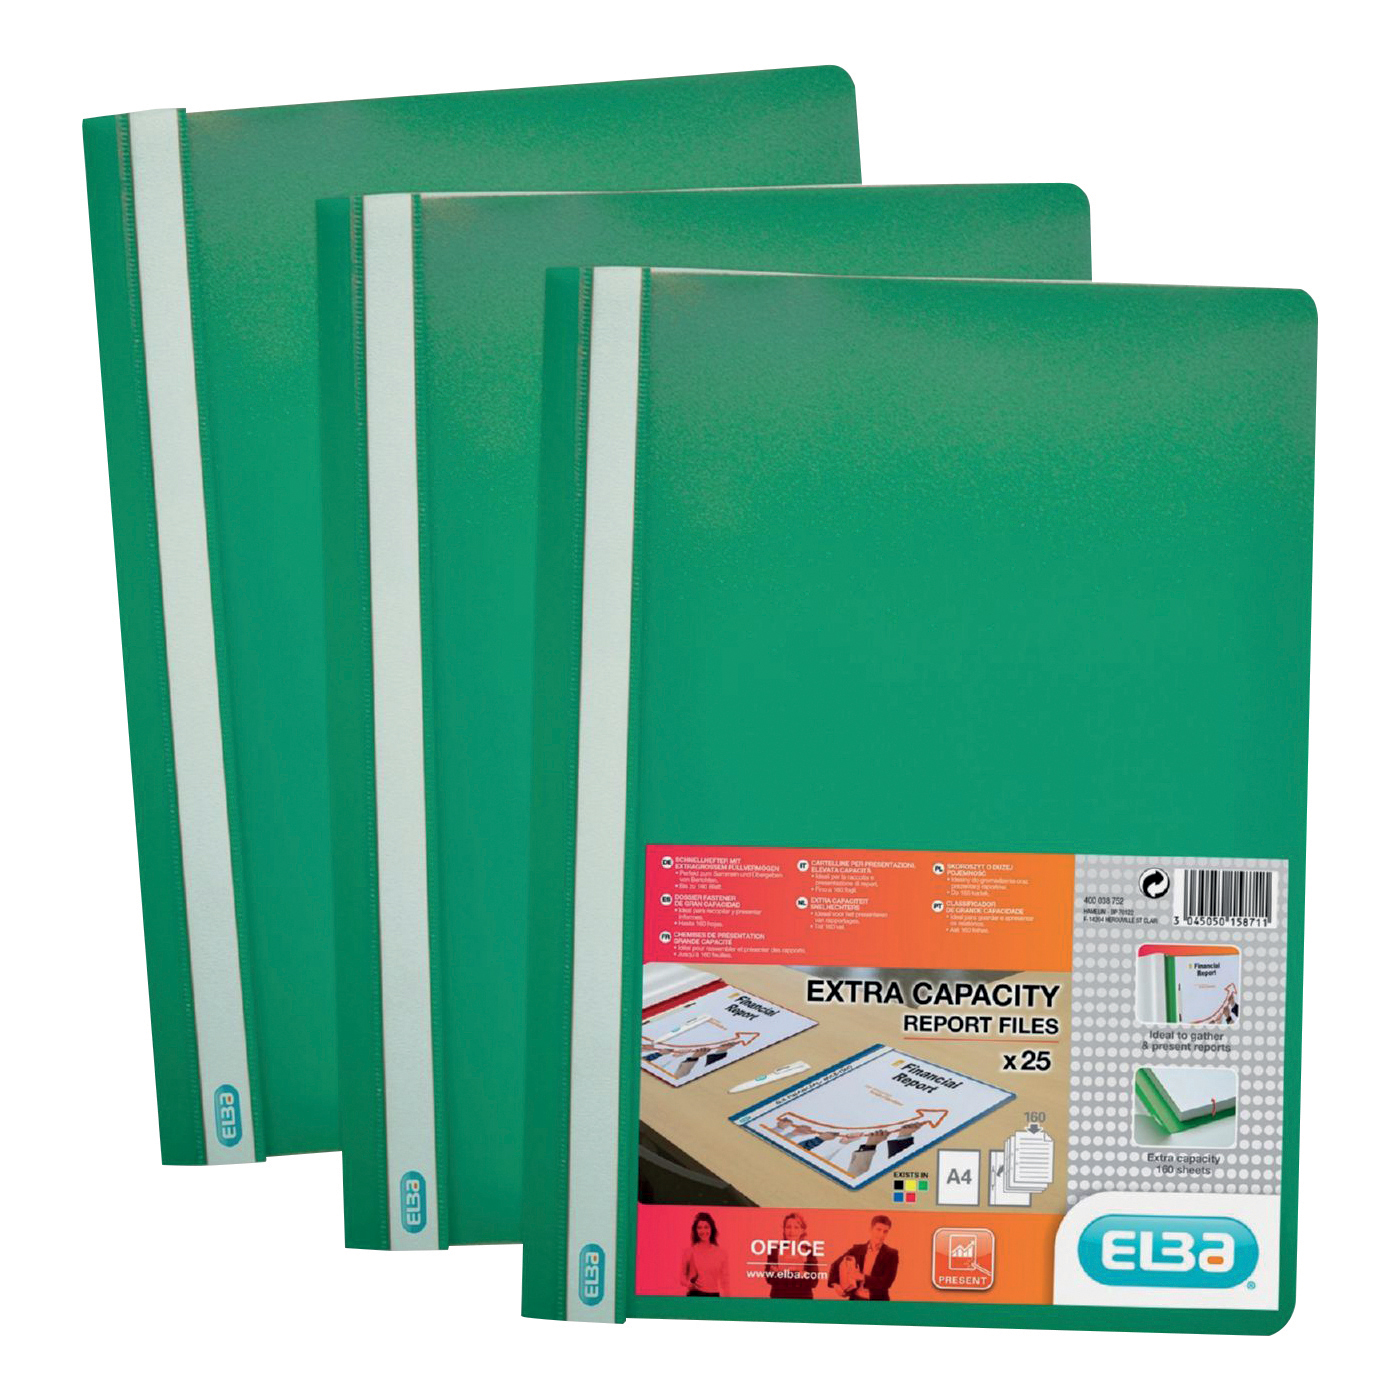 Clip Files Elba Report Folder Capacity 160 Sheets Clear Front A4 Green Ref 400055031 Pack 50